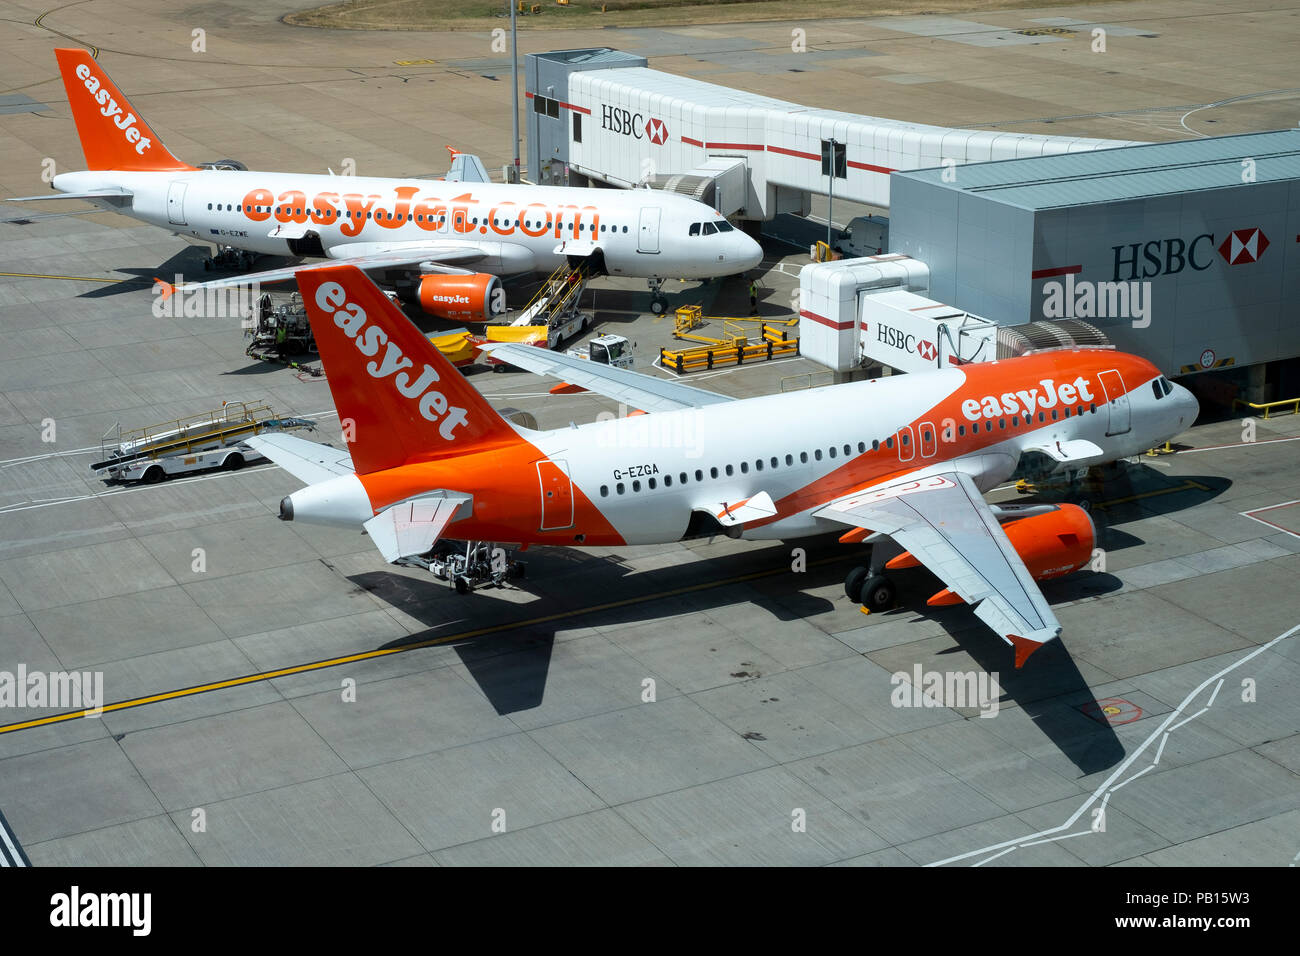 An easyJet Airbus A319 in new livery, and easyJet Airbus A320 in old livery viewing at London Gatwick airport - Stock Image